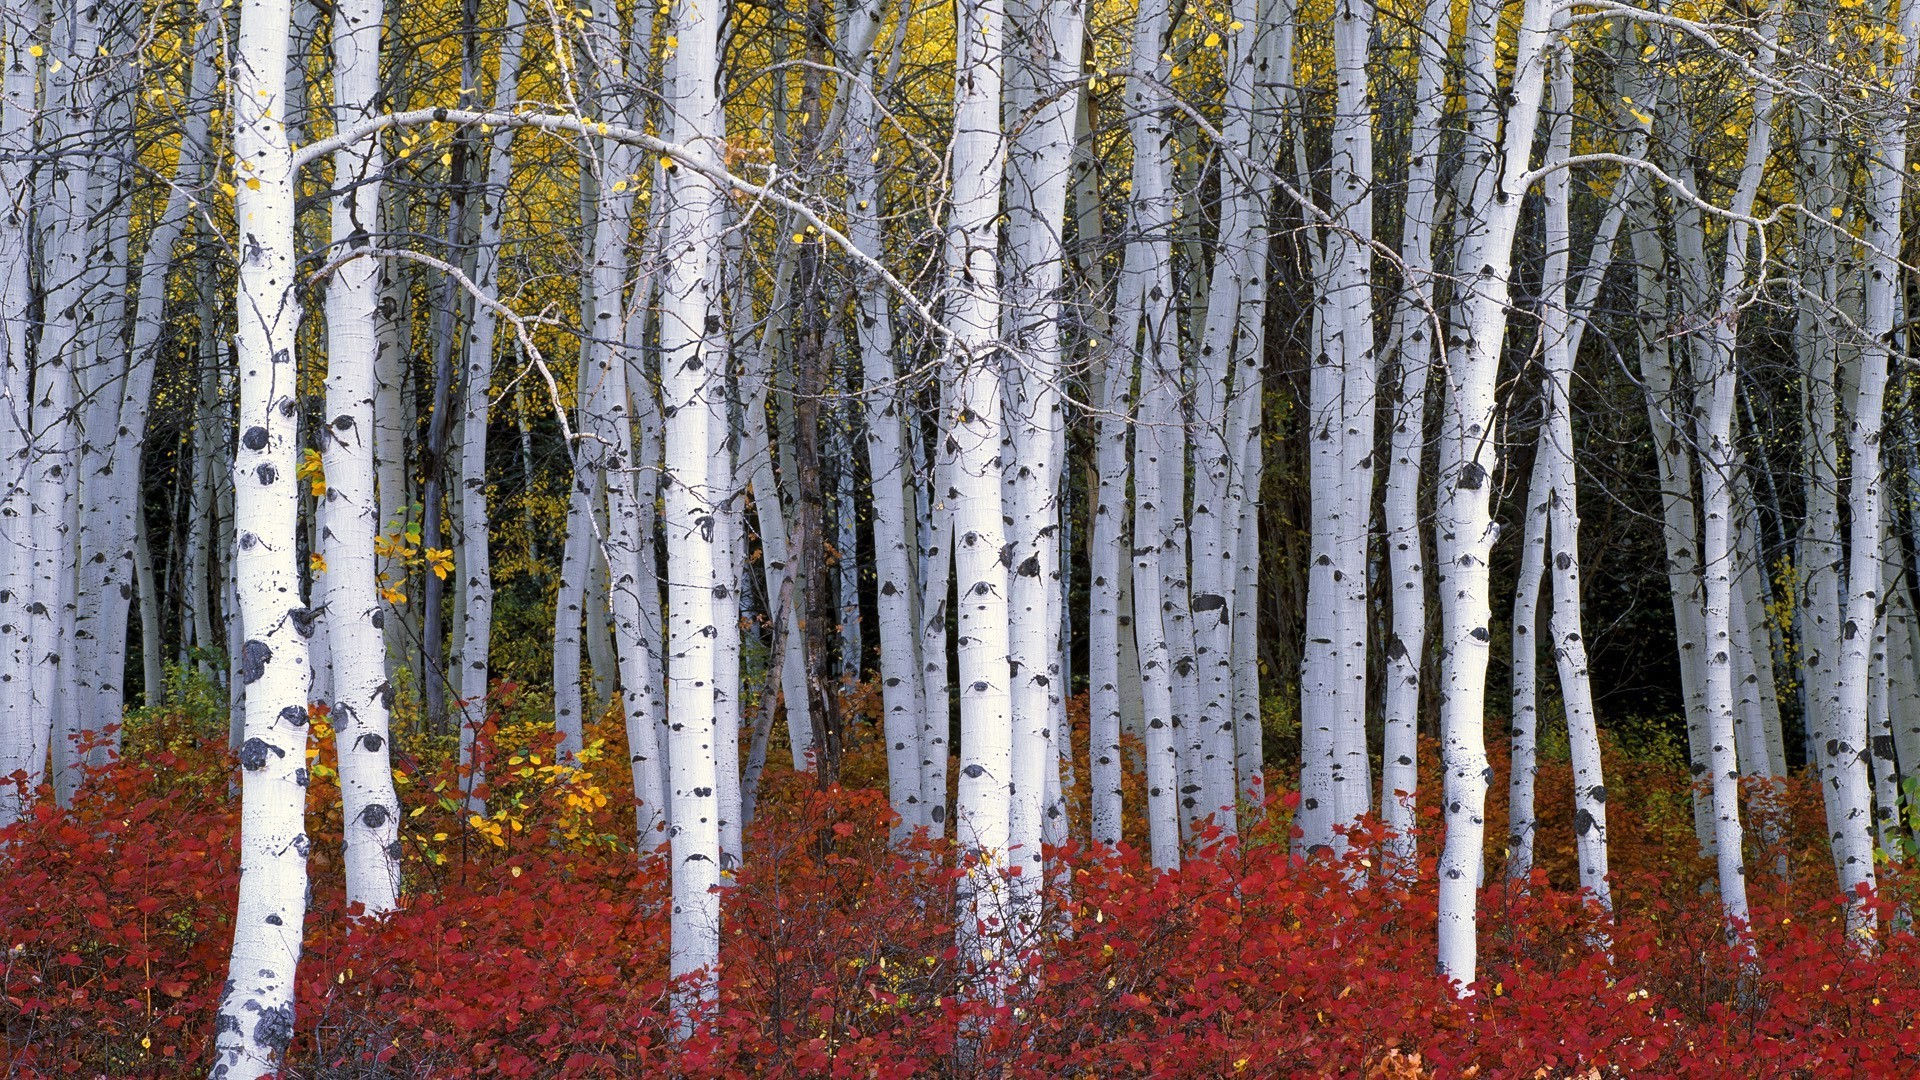 Birch Tree wallpaper ·① Download free awesome HD ...